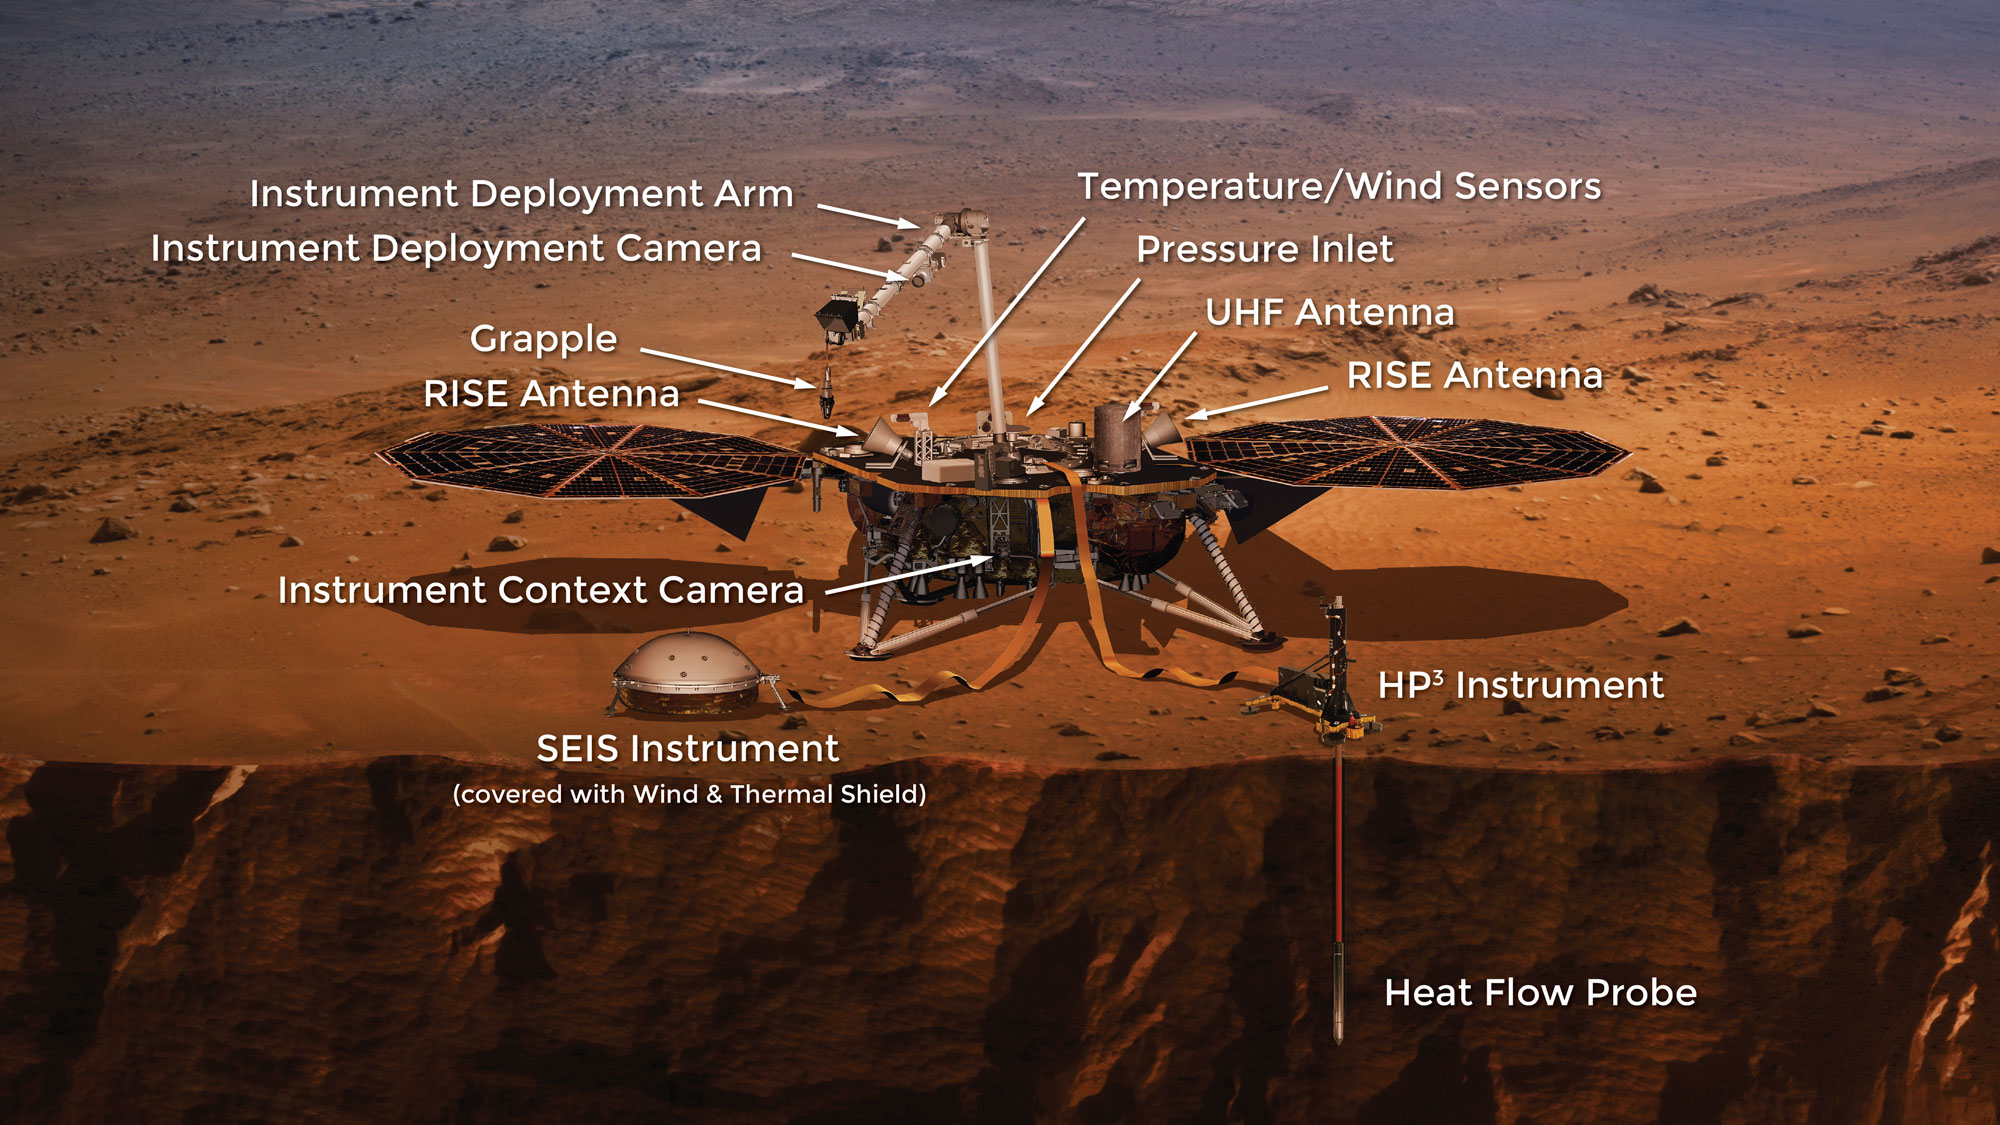 The instruments onboard the much-anticipated InSight Lander, scheduled for Mars in November this year (2018). Click on the image to expand.  Image Credit: JPL/NASA